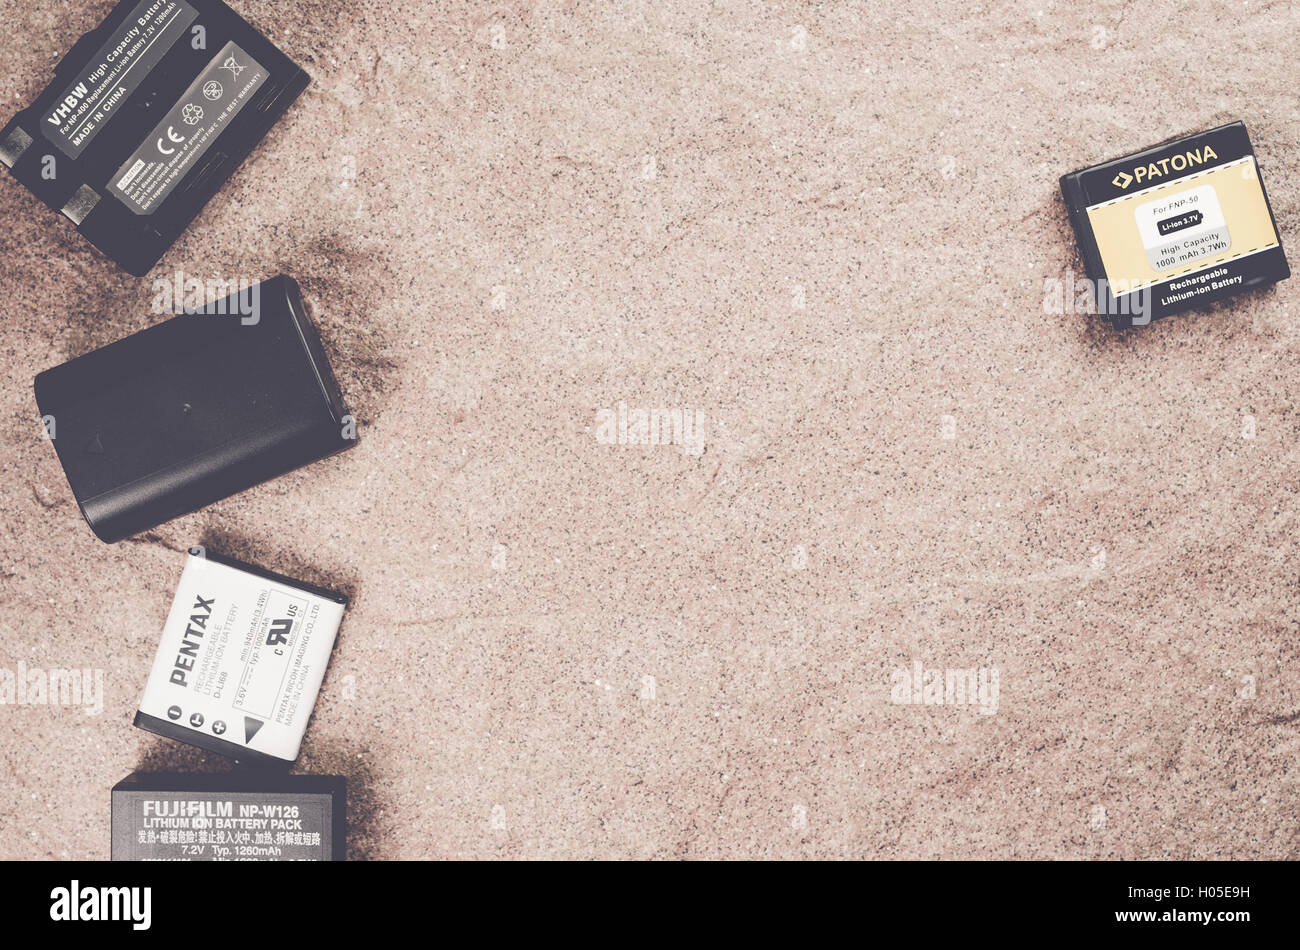 spare camera batteries on a stone worktop - copy space - Stock Image